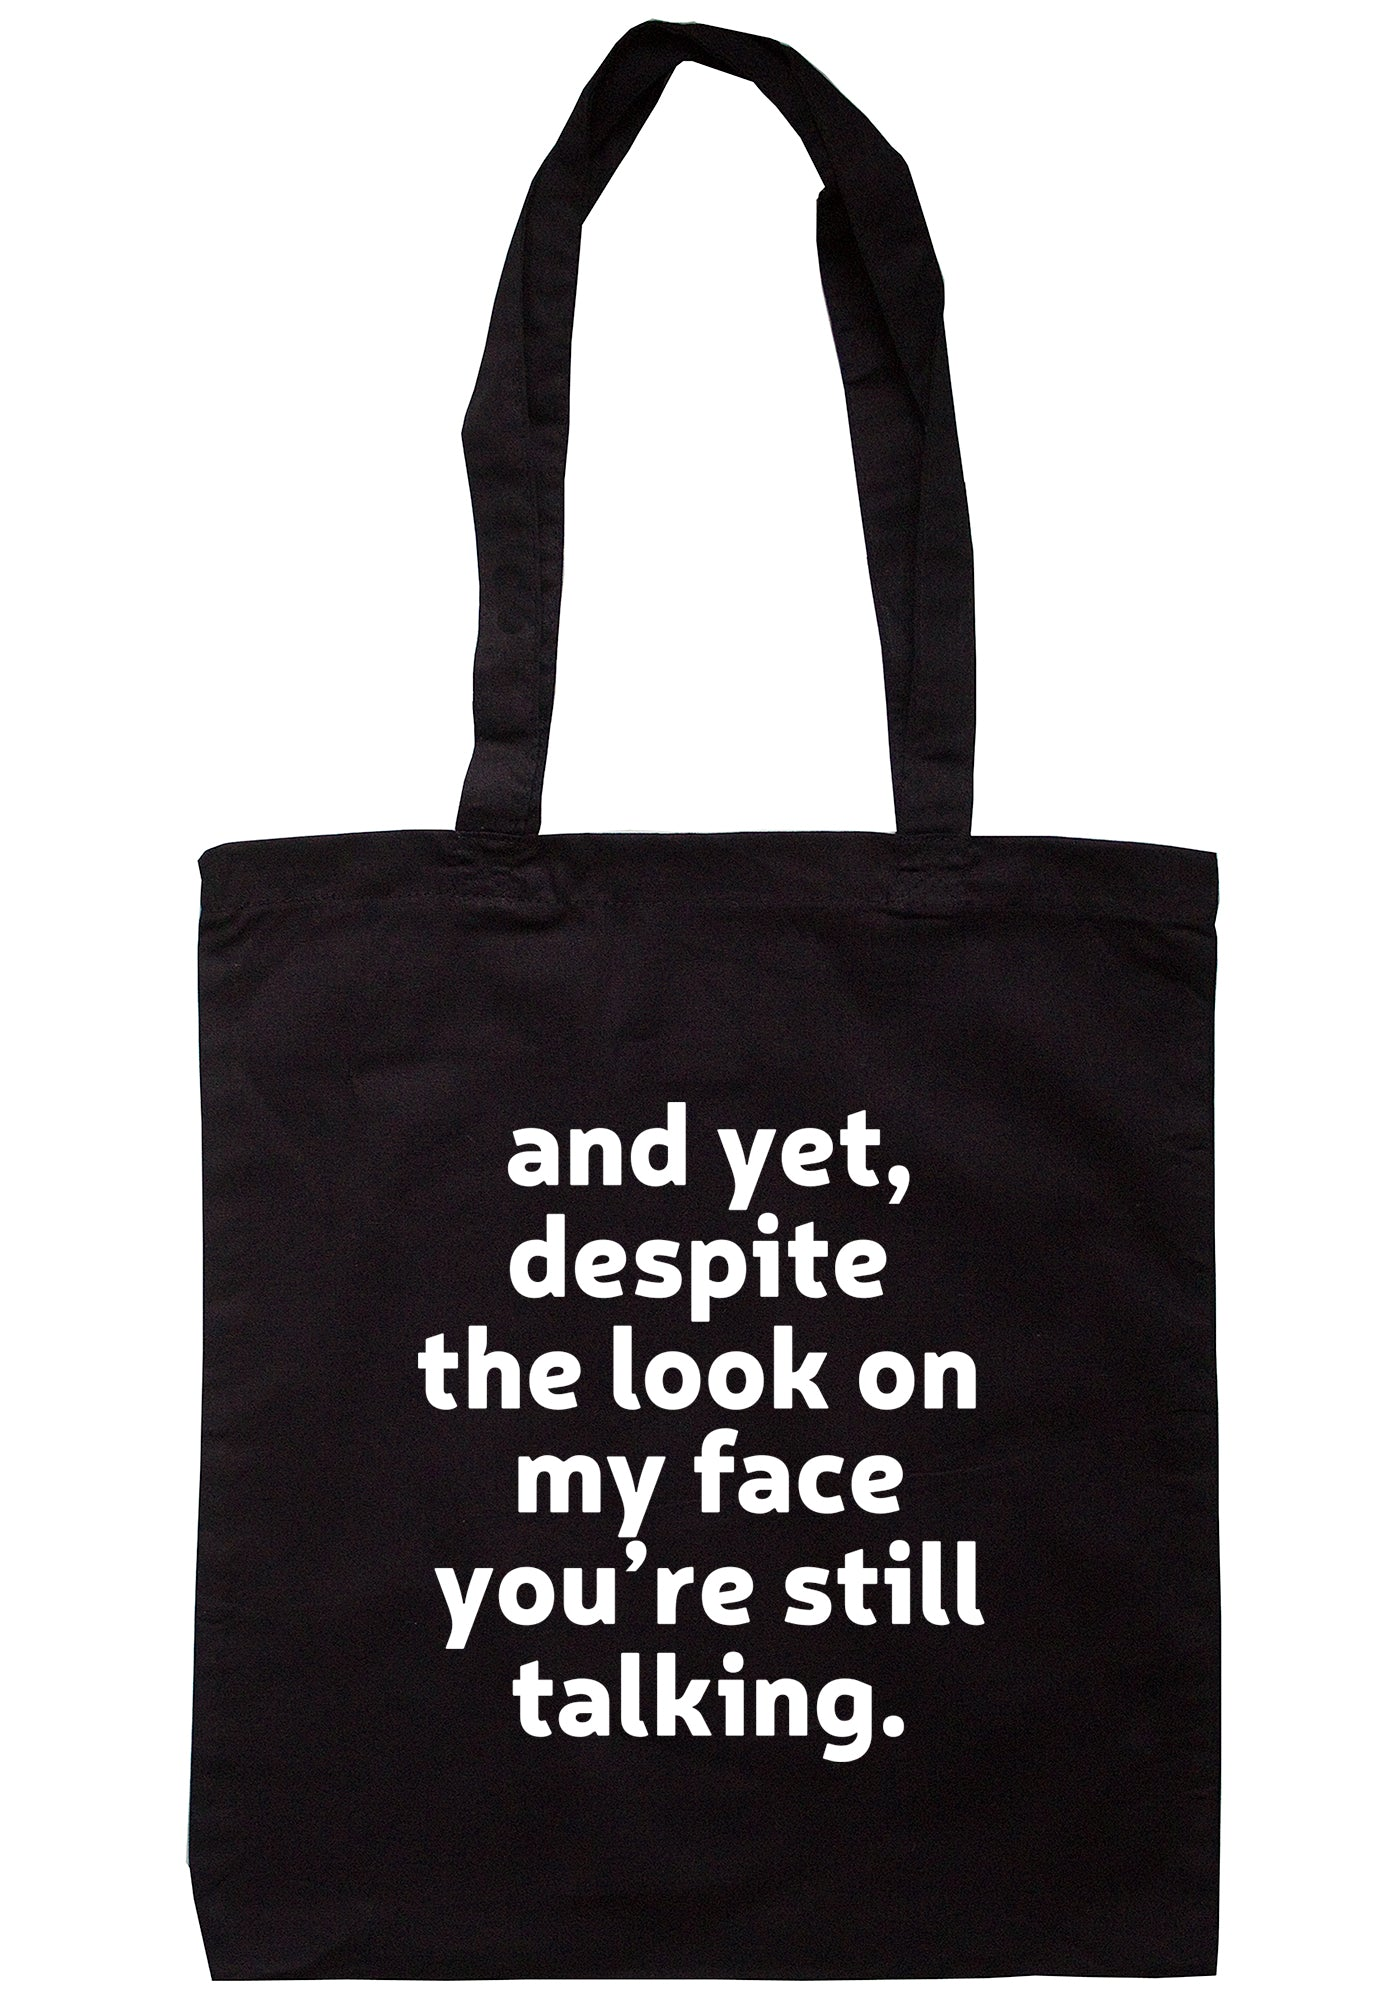 And Yet, Despite The Look On My Face You're Still Talking. Tote Bag TB1652 - Illustrated Identity Ltd.